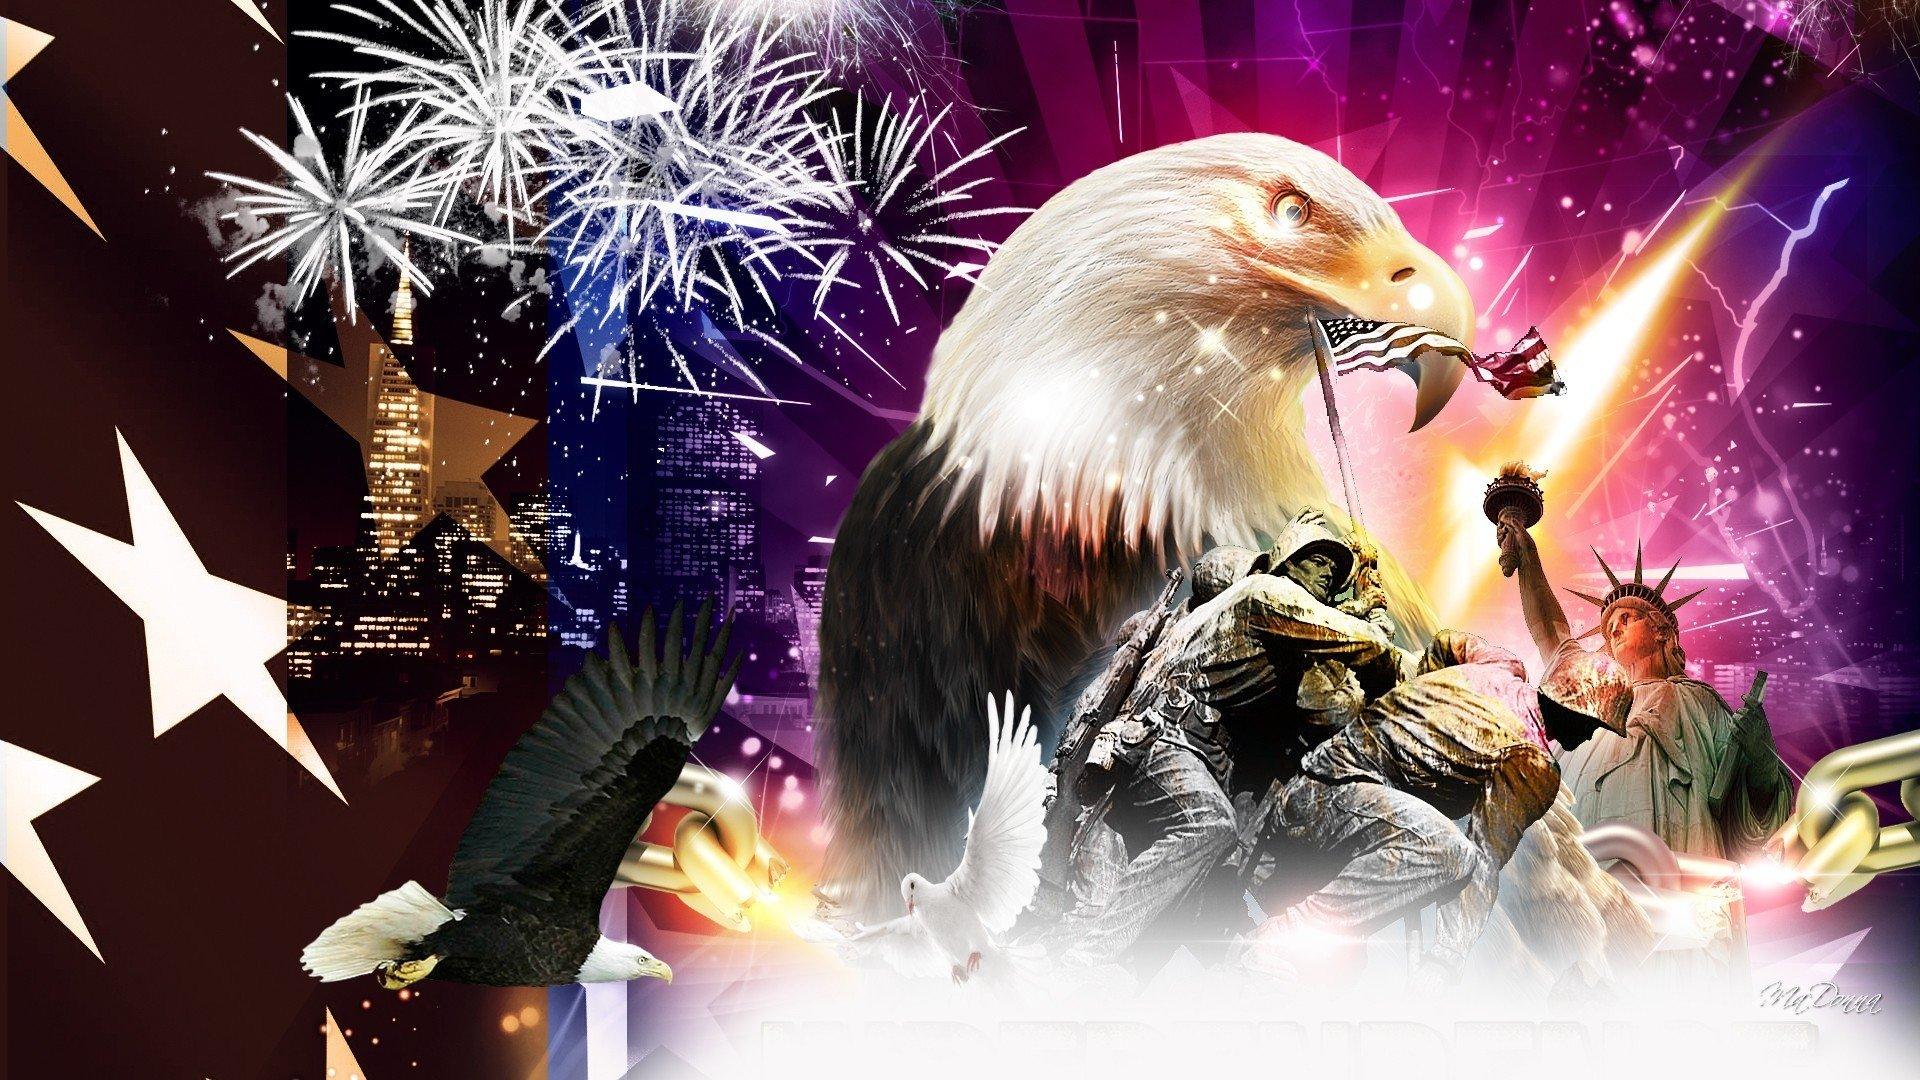 4th July Fireworks Eagle Mood America Usa Wallpaper